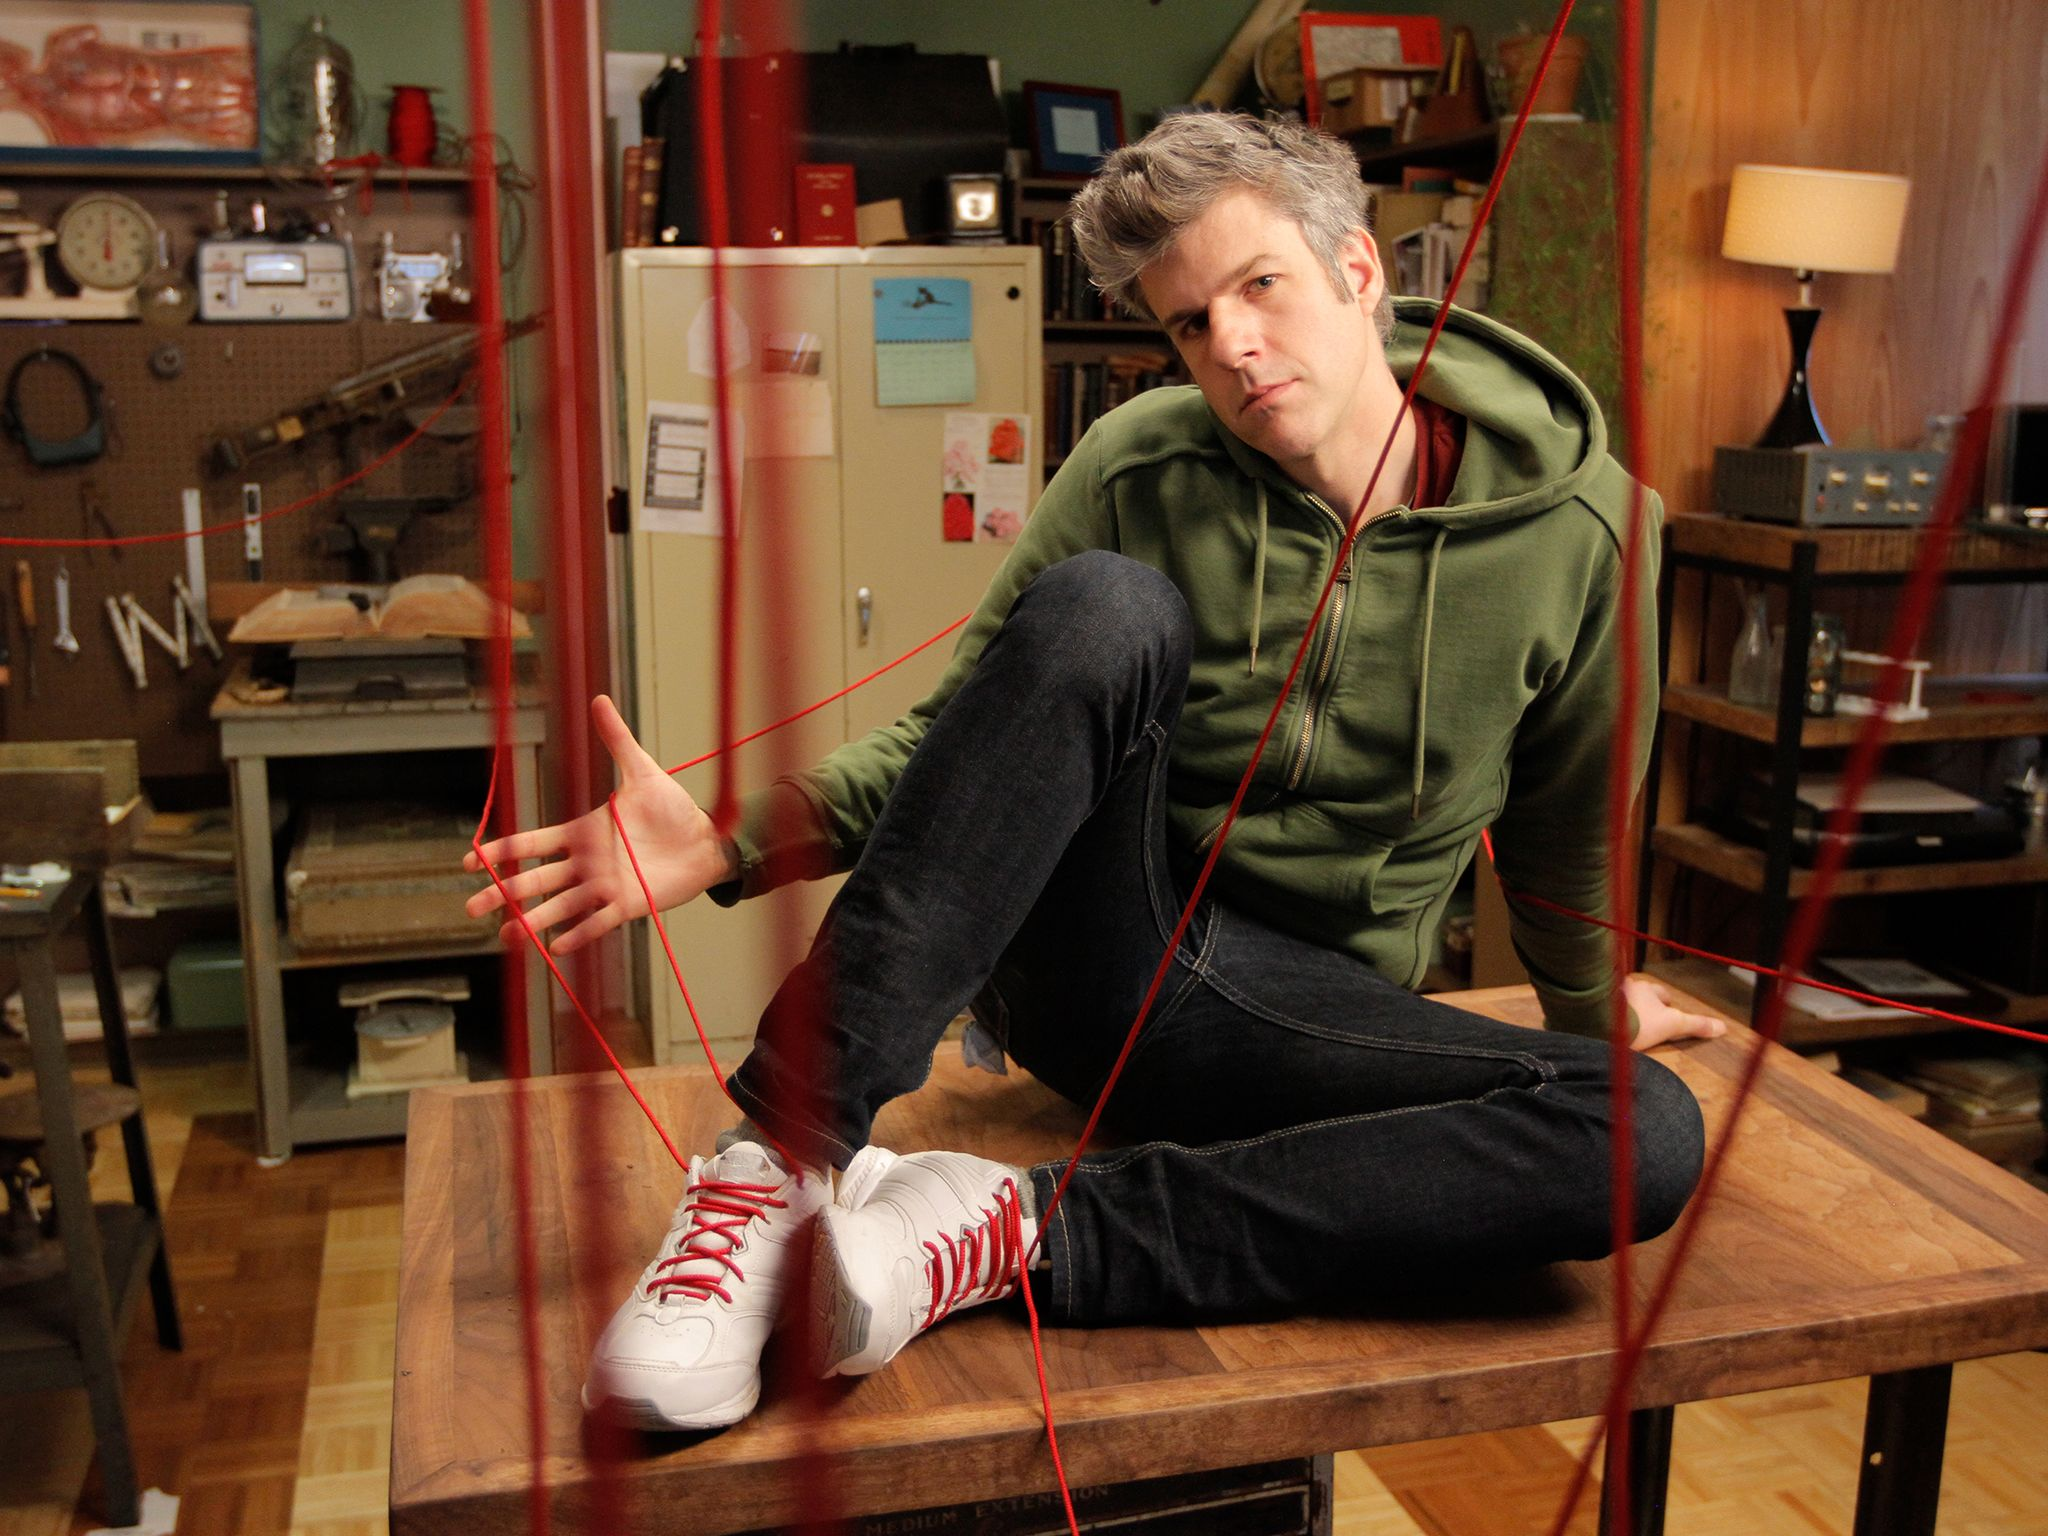 Beacon, NY: David Rees poses on top of his workbench with 50-foot laces strewn about his workshop... [Photo of the day - October 2014]